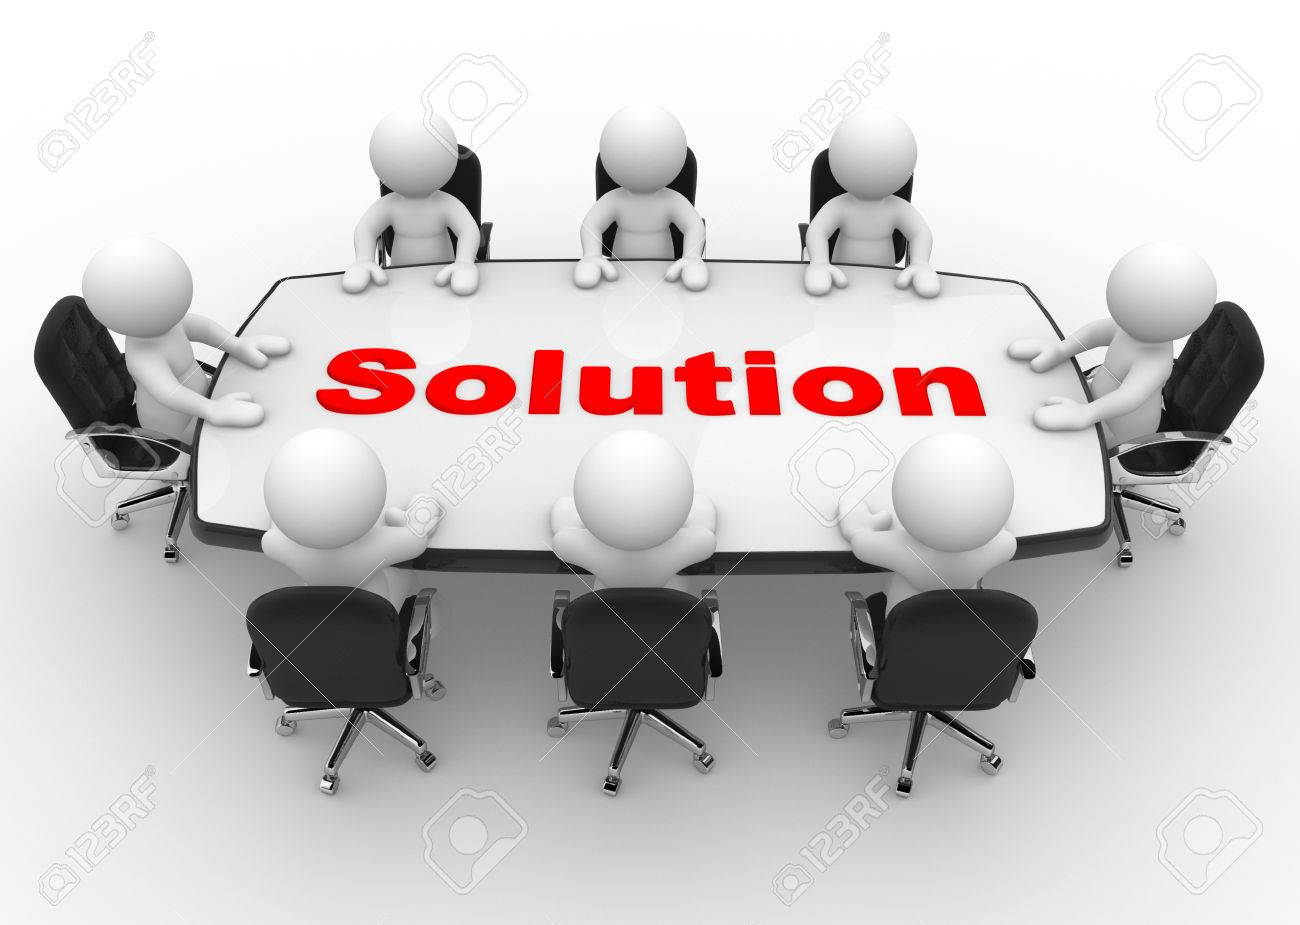 3d people - men, person at a conference table. Solution Standard-Bild - 32013506